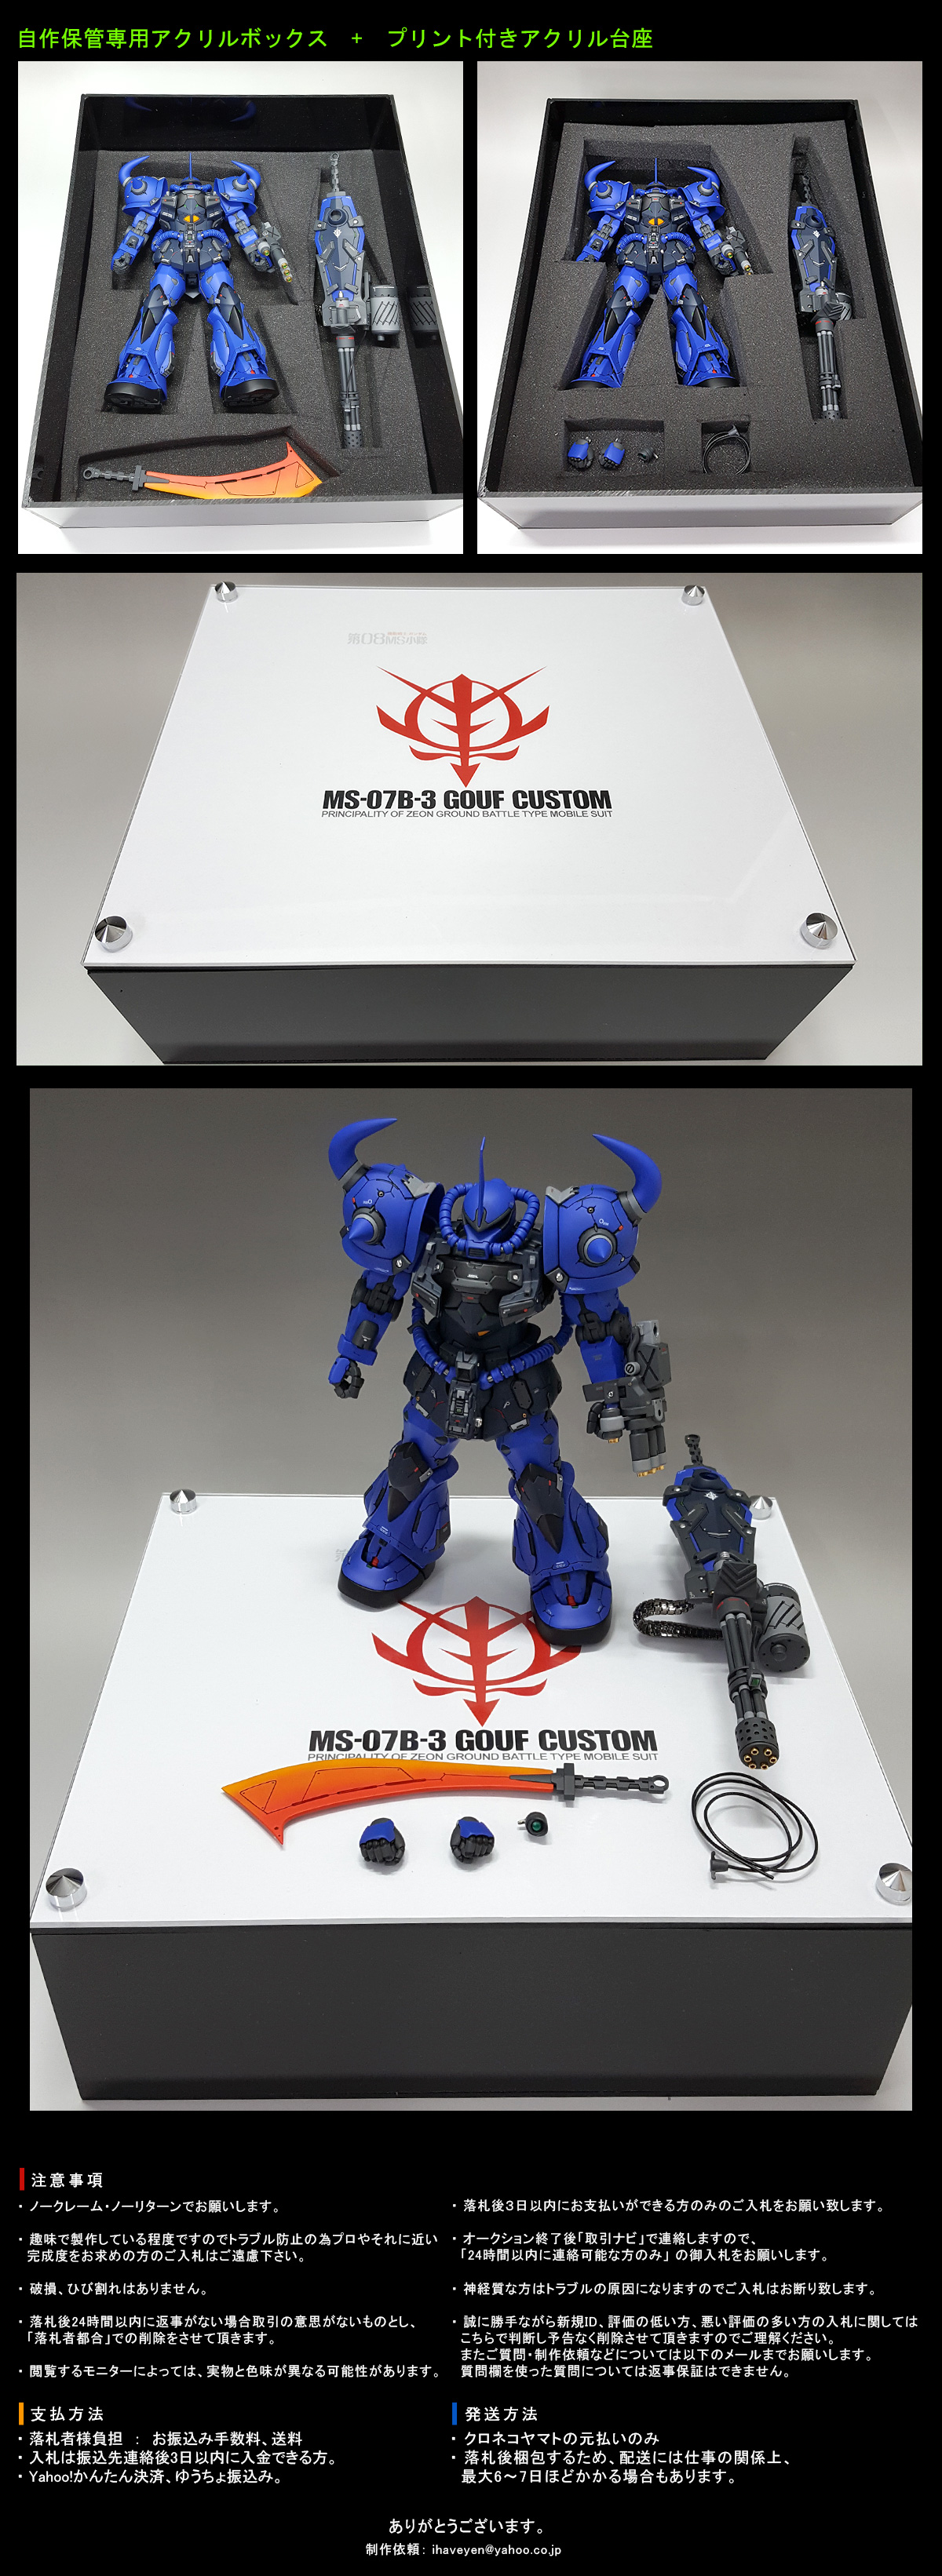 MG 1/100 GOUF CUSTOM 2.0 Frame + Conversion Kit